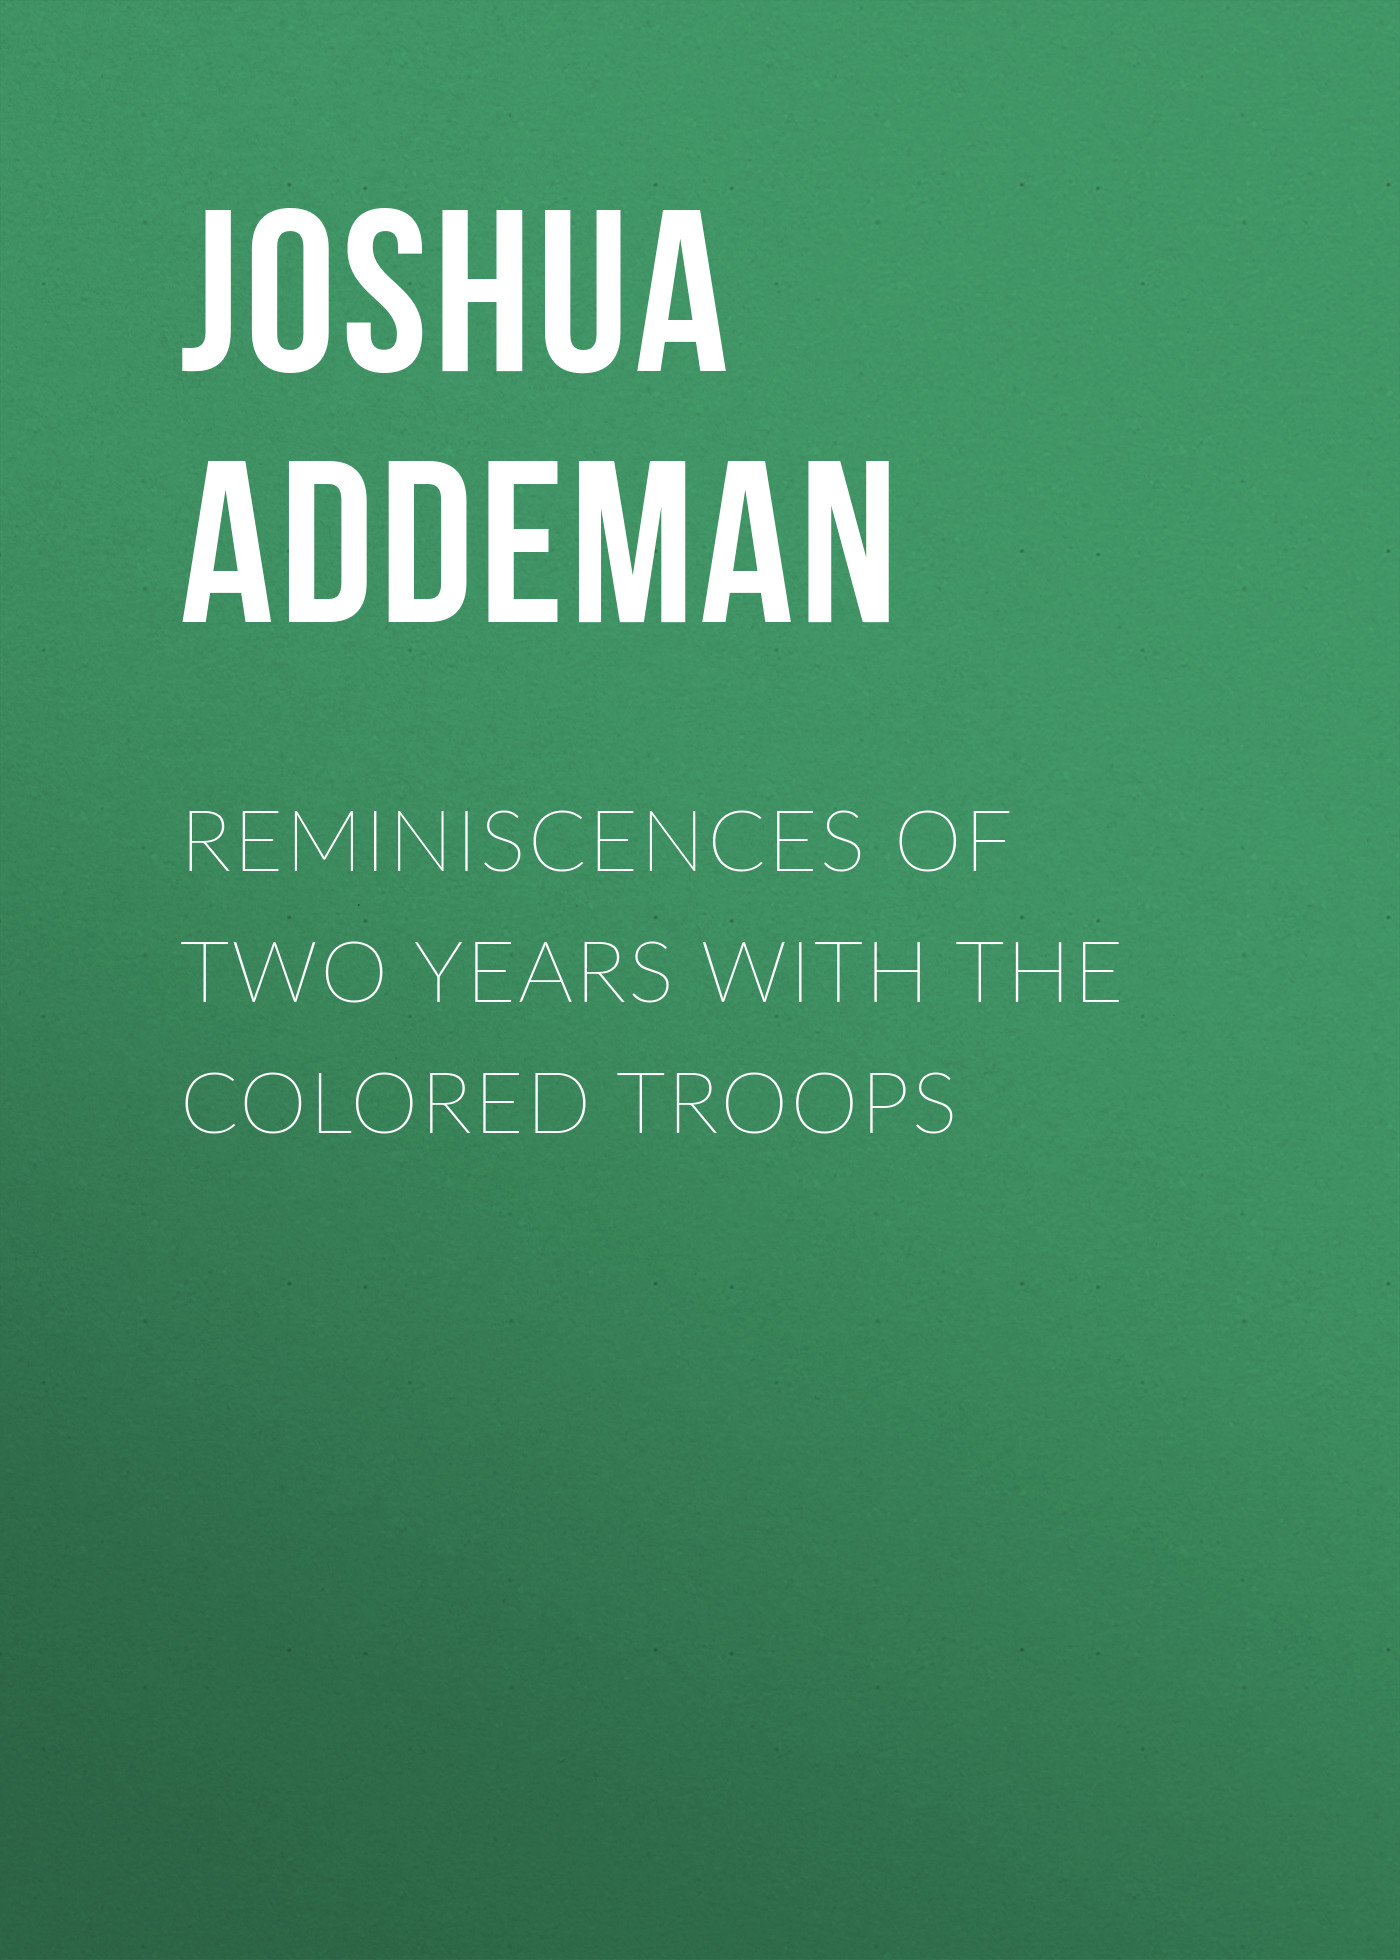 Reminiscences of two years with the colored troops